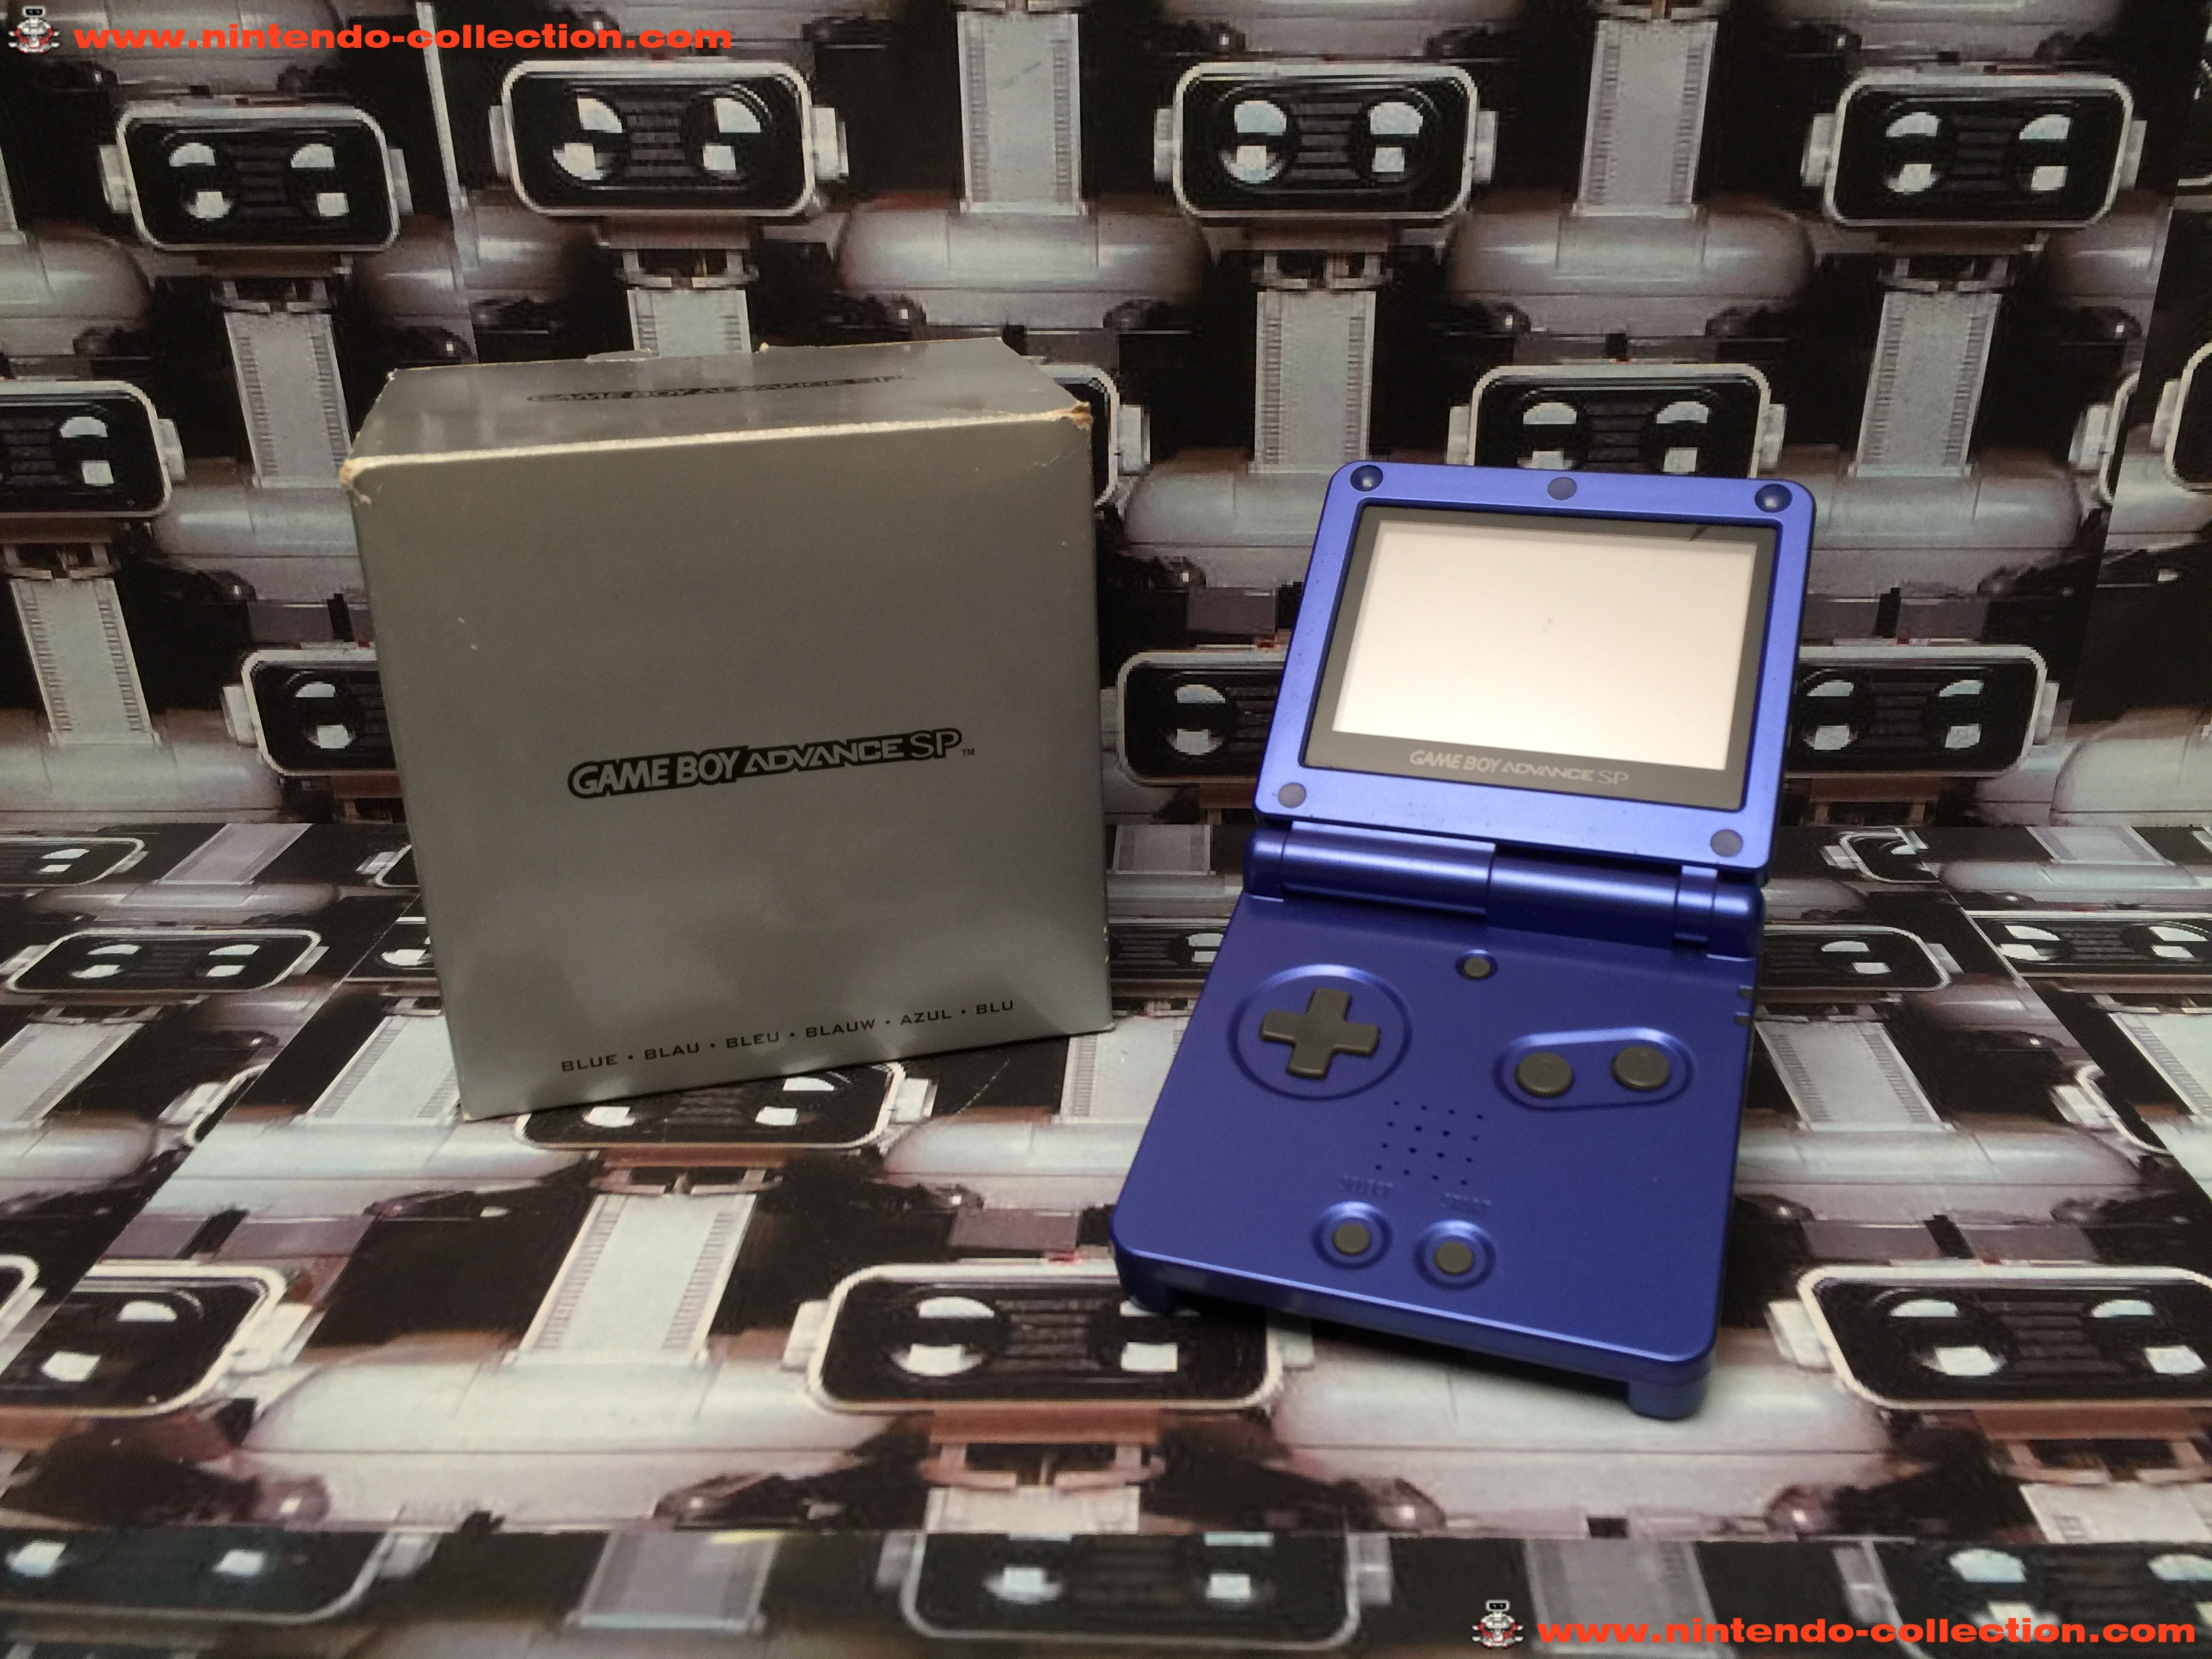 www.nintendo-collection.com - Gameboy Advance GBA SP Blue Bleu Edition europeenne european - 03